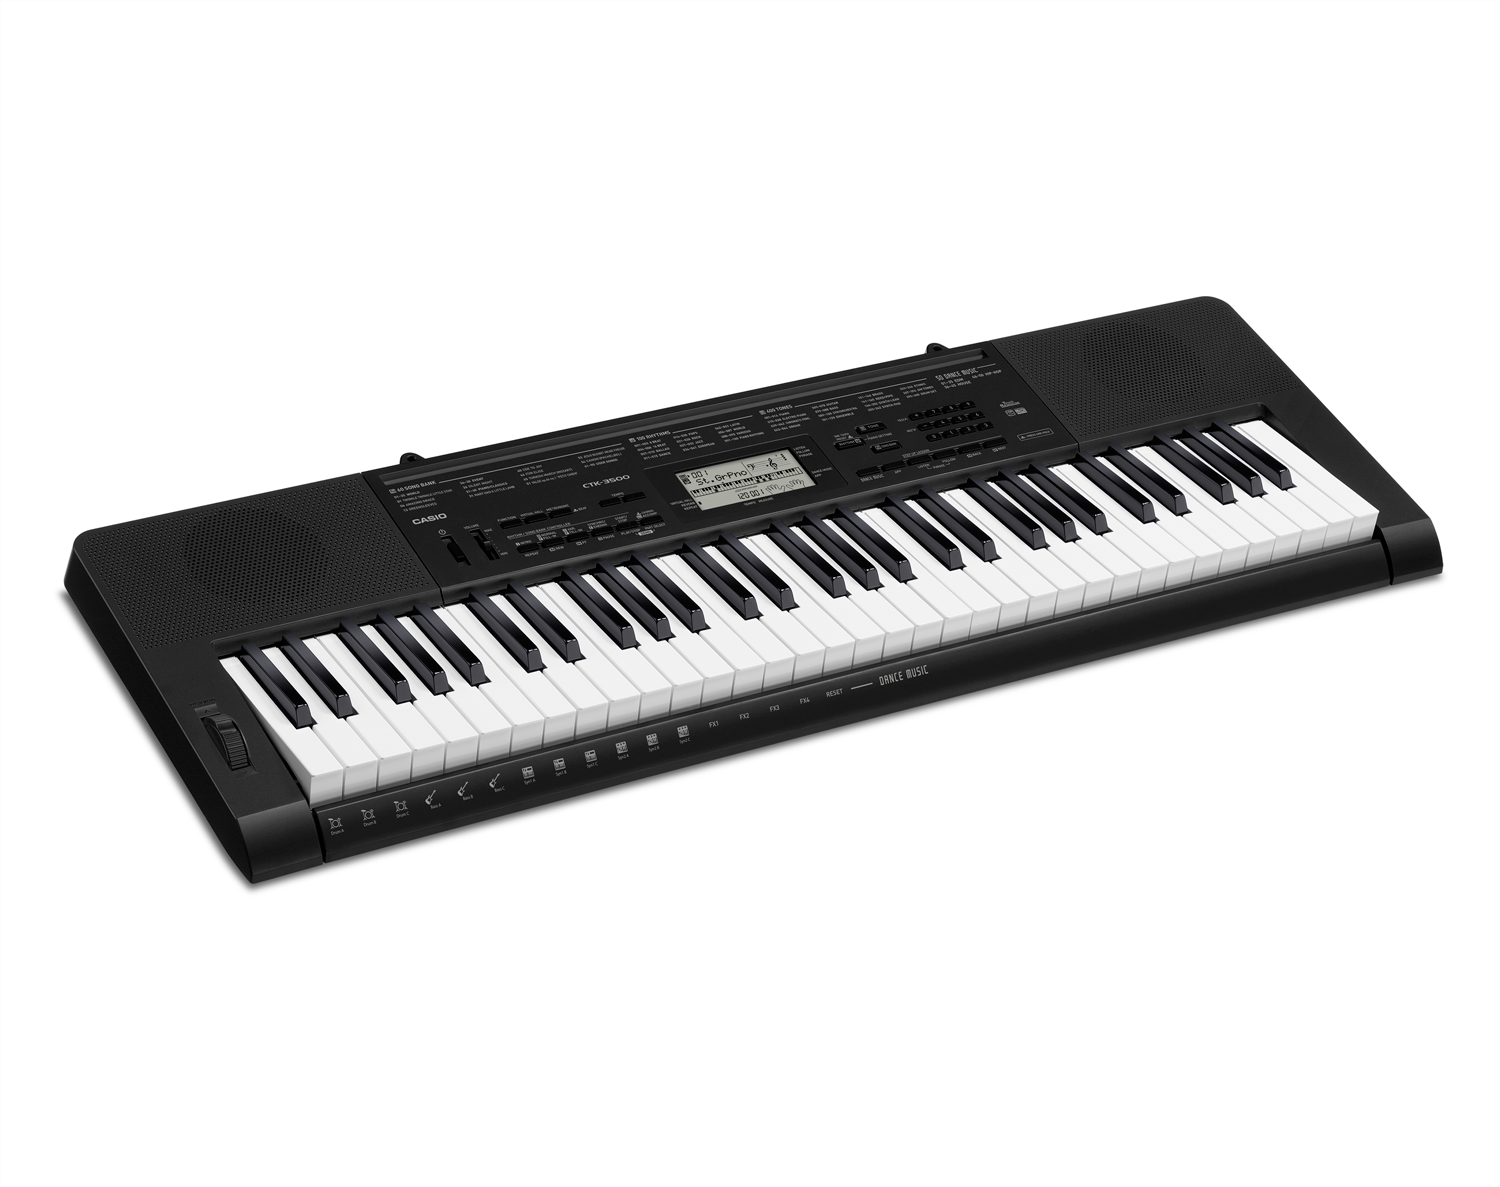 Casio CTK-3500 full size keyboard image side